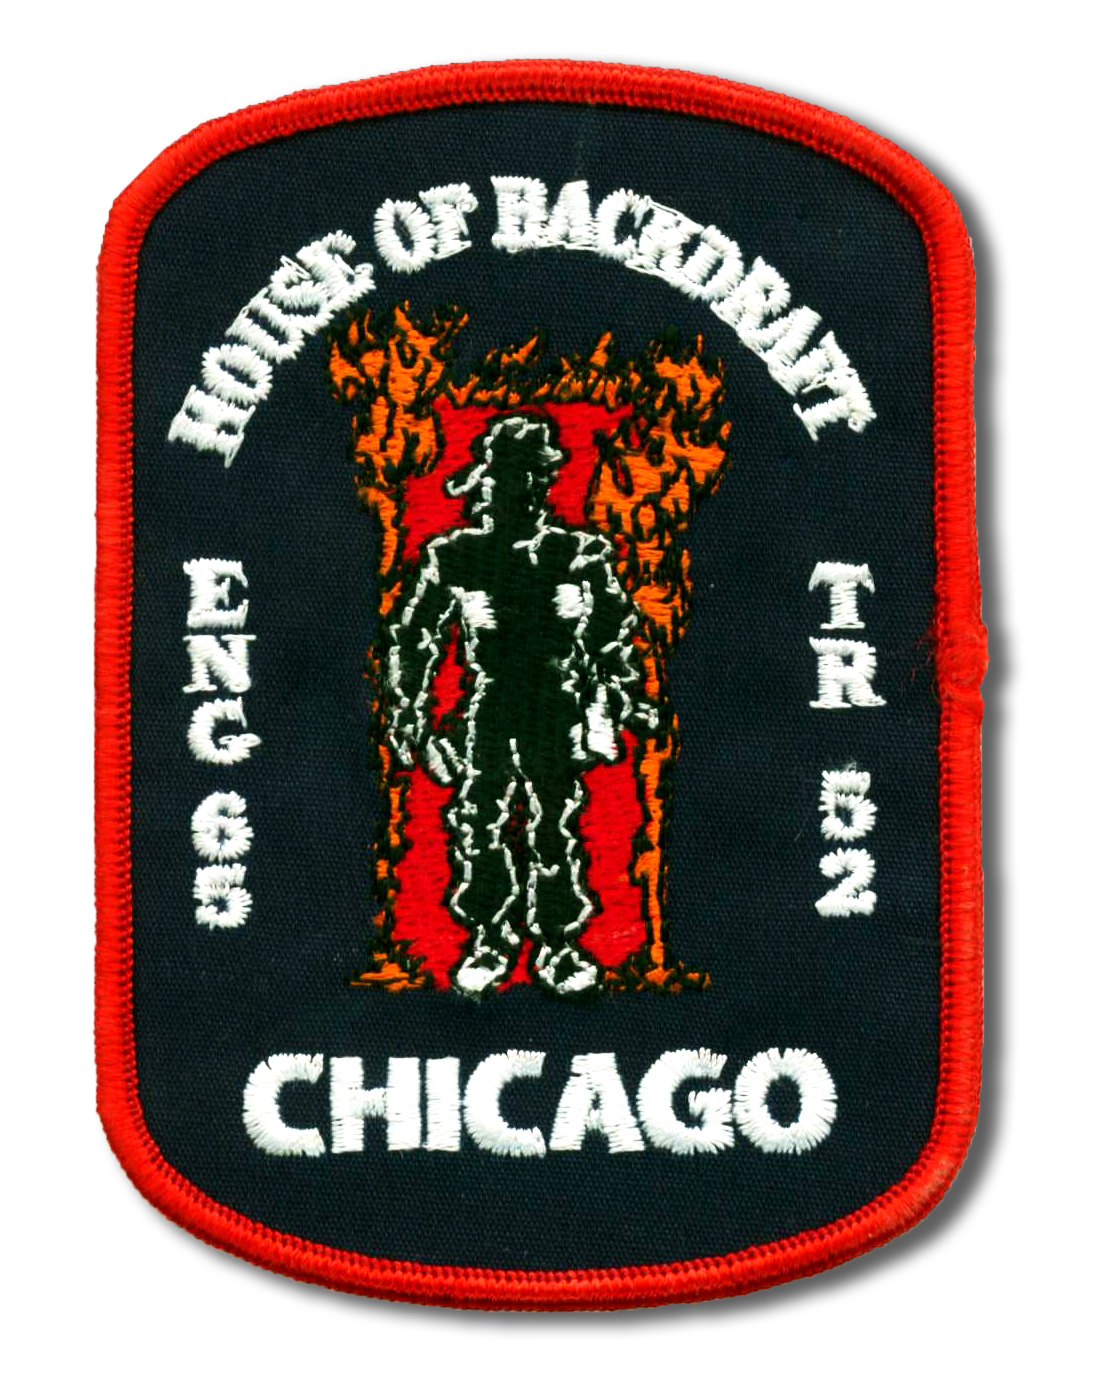 Chicago FD Engine 65's patch